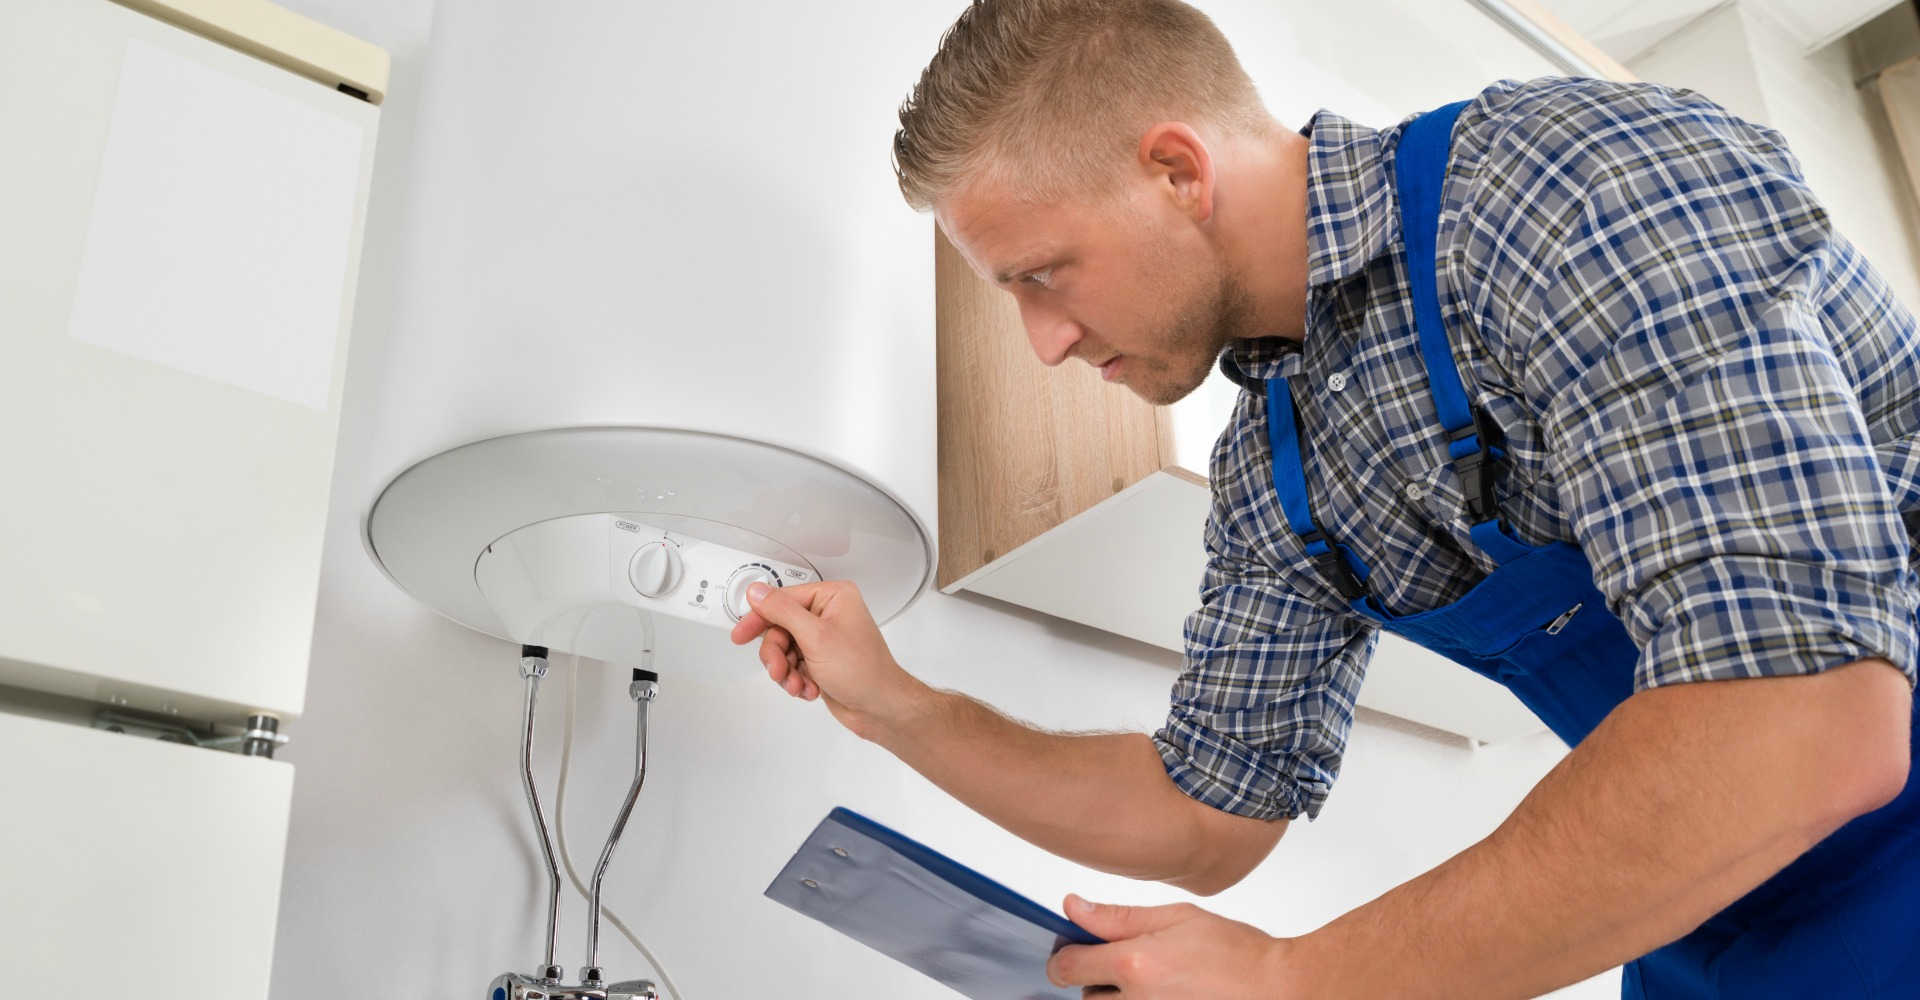 Male Worker With Clipboard Adjusting Temperature Of Water Heater